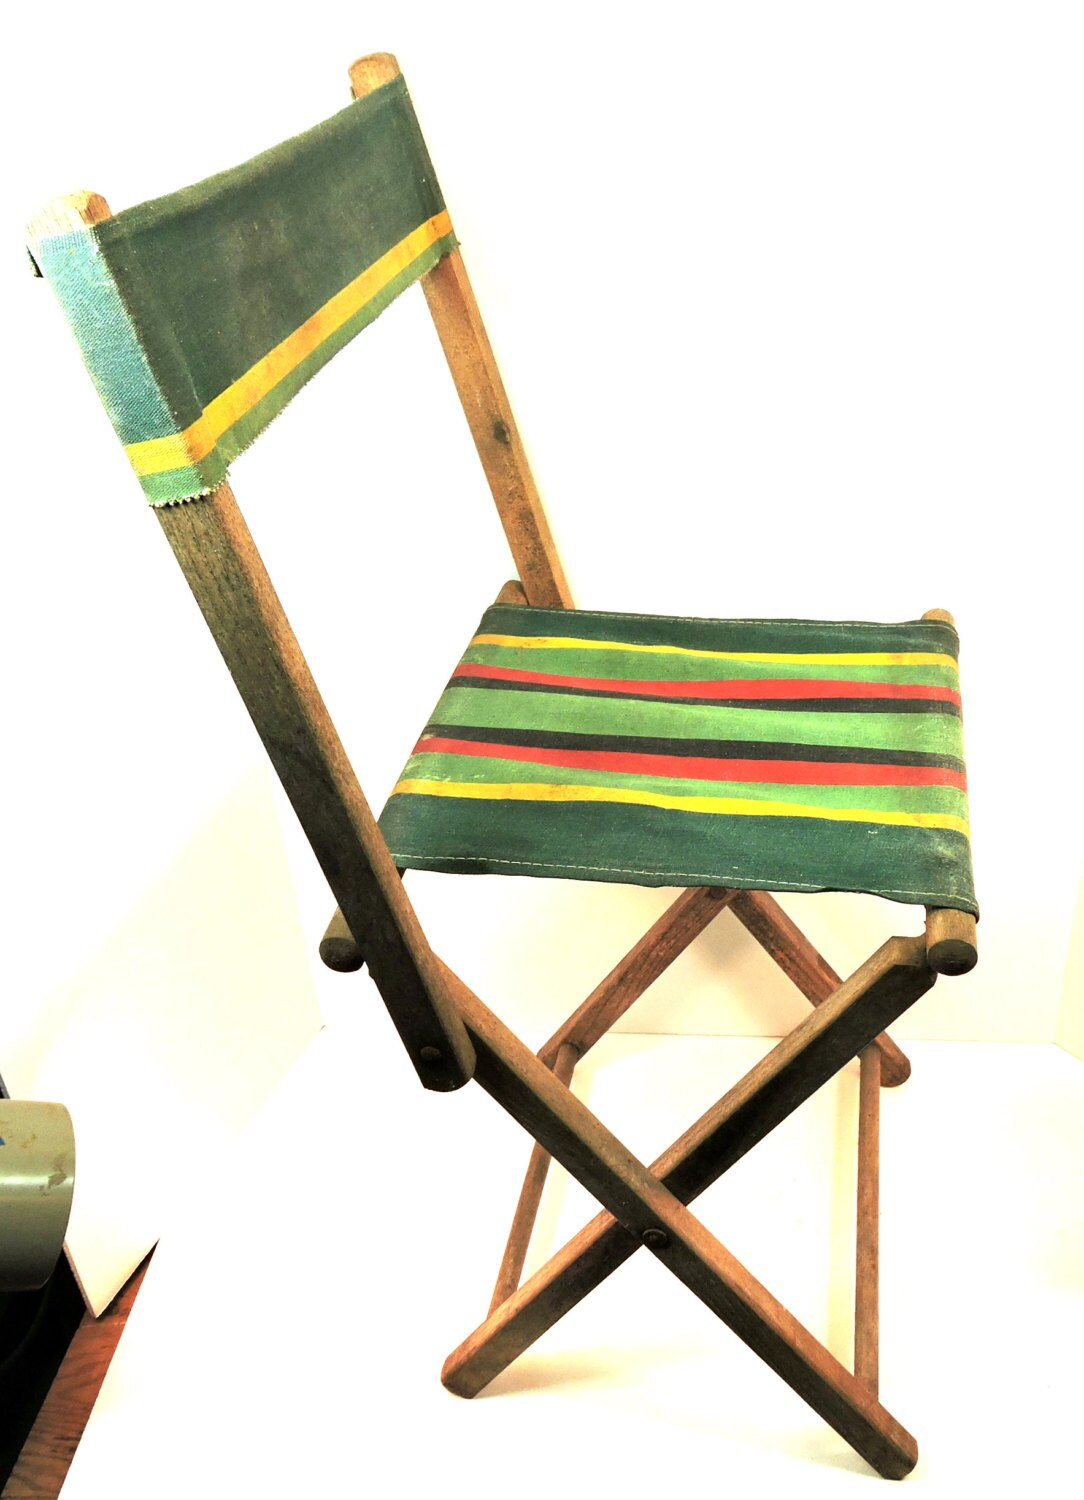 Vintage Camp Stool Folding Back Canoe Camping Seat Tent Chair